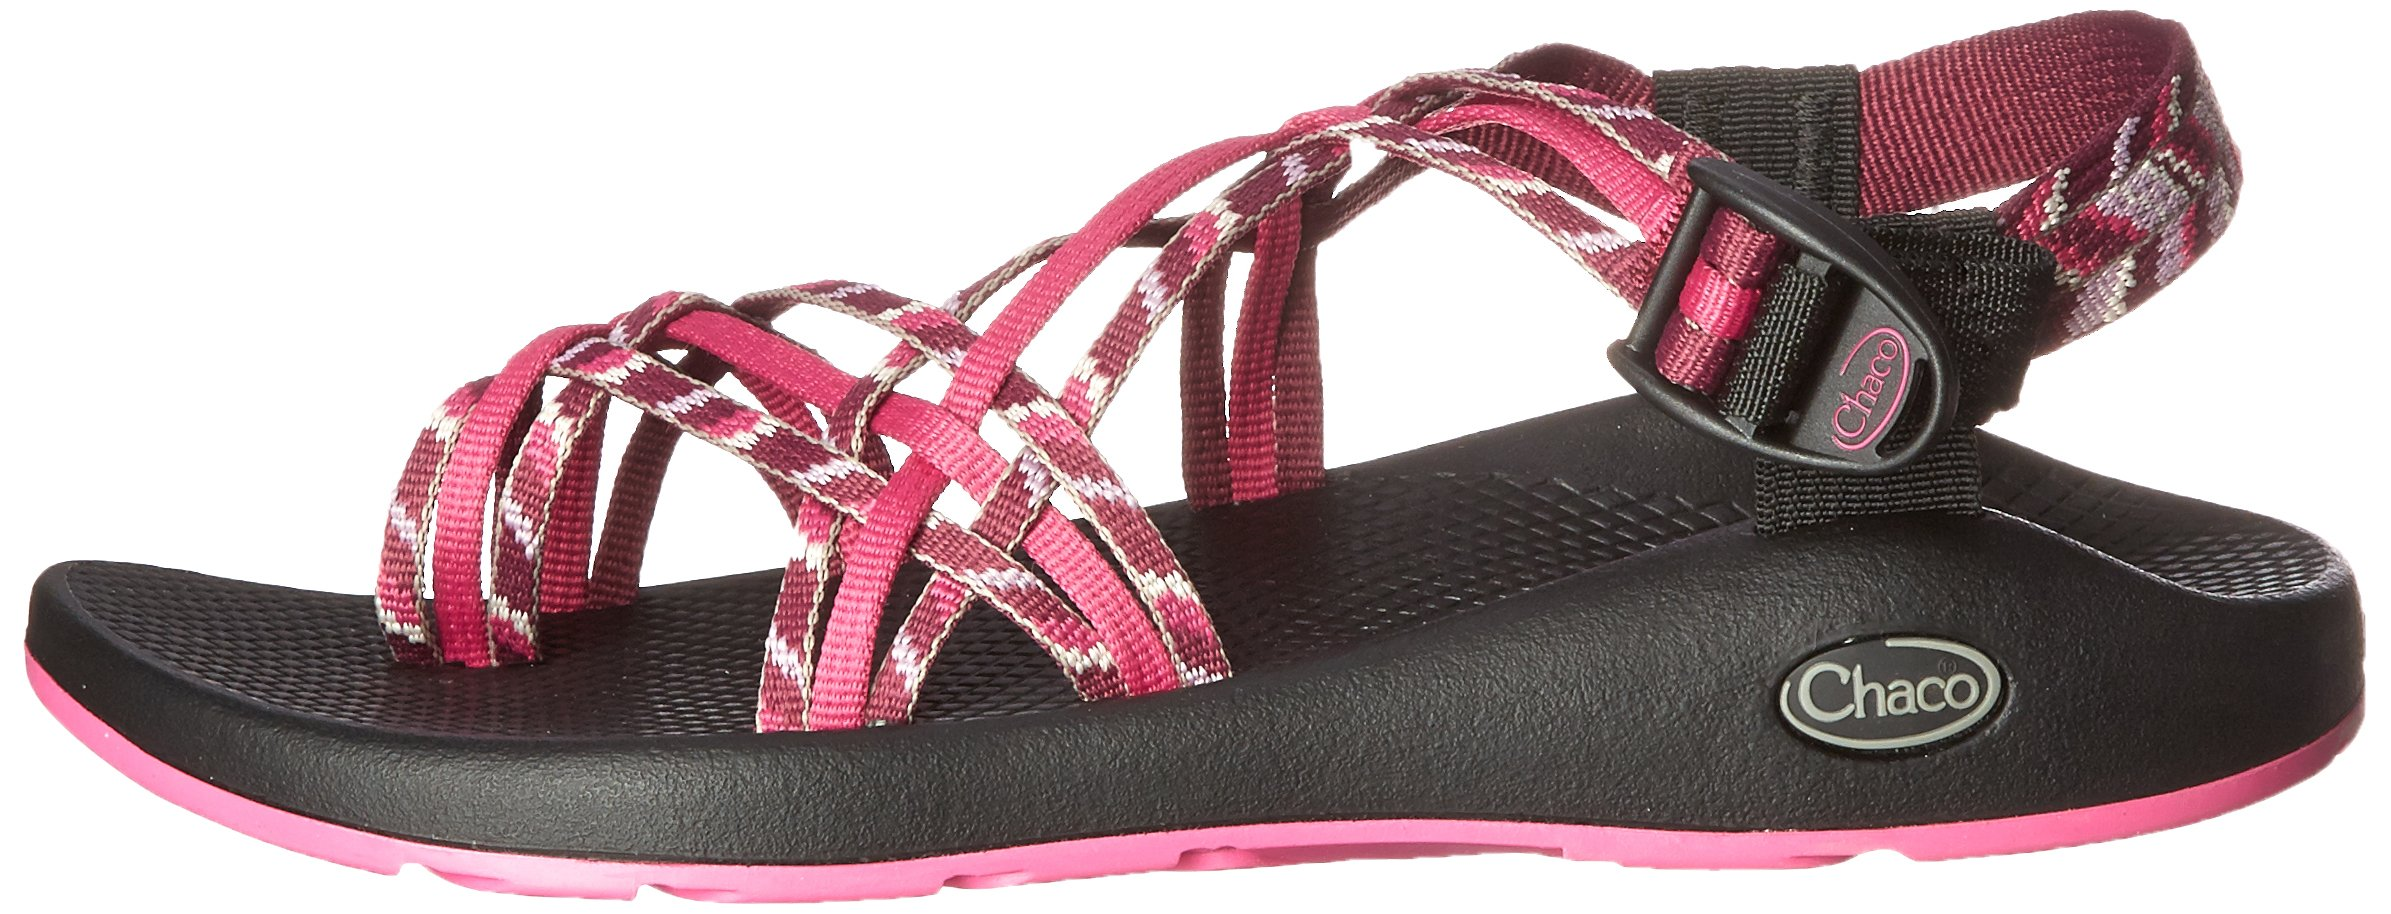 Chaco Women's ZX3 Yampa W Sandal, Clashing, 5 M US by Chaco (Image #5)